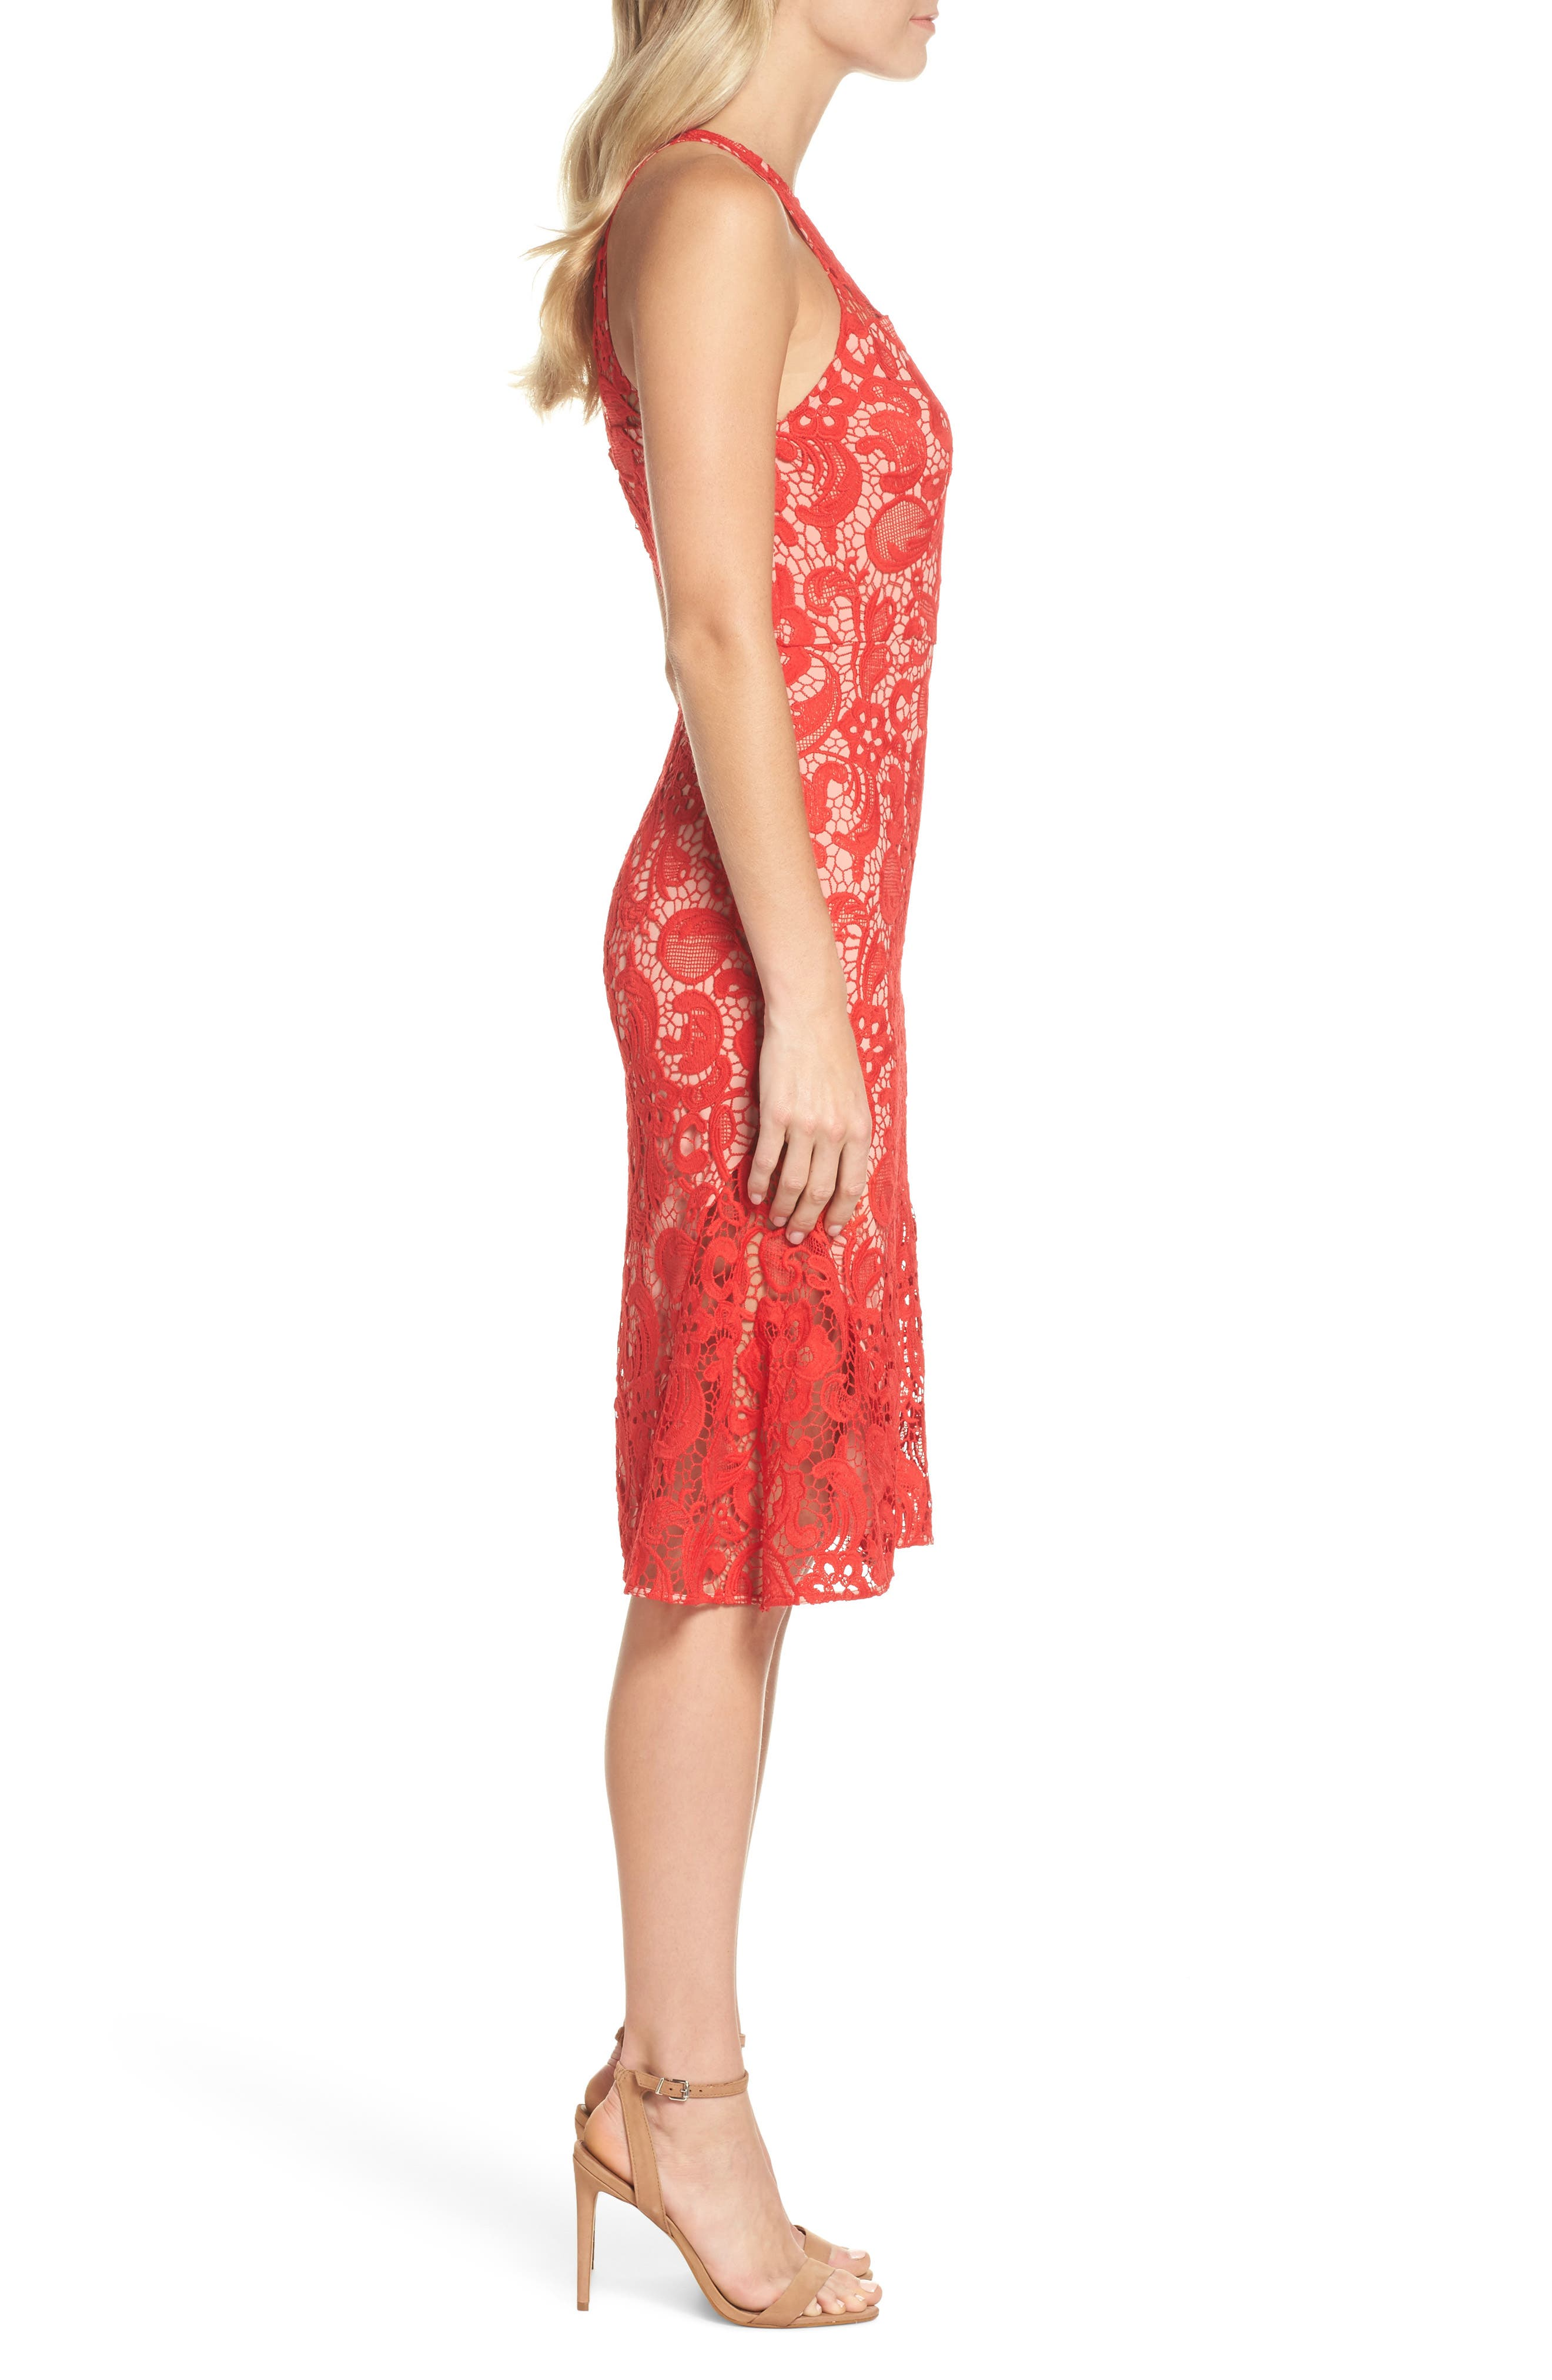 Carnation Lace Dress,                             Alternate thumbnail 3, color,                             Red Fiery